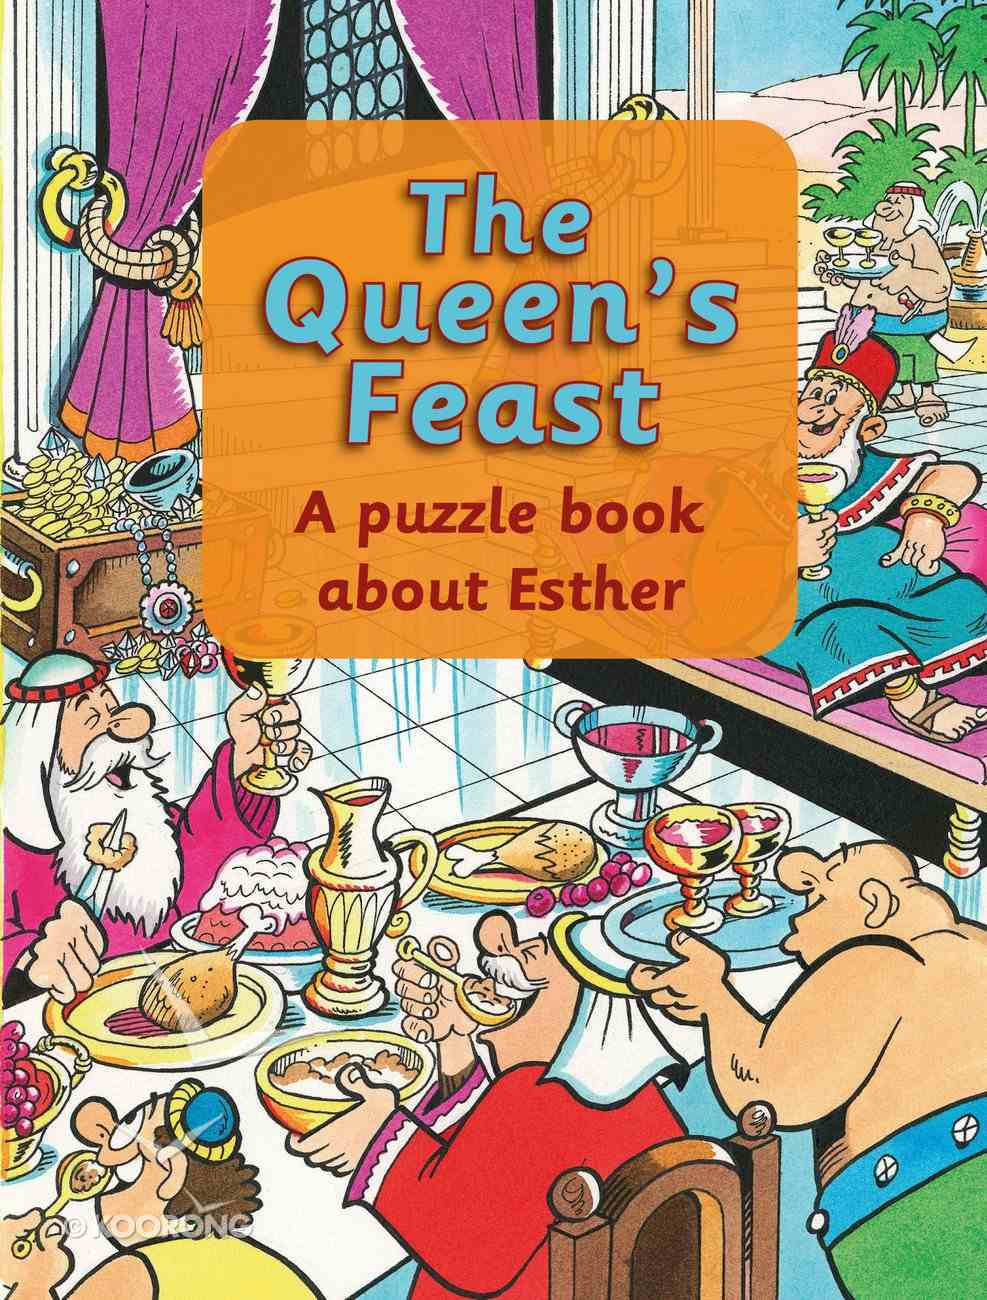 The Queen's Feast: Esther Paperback